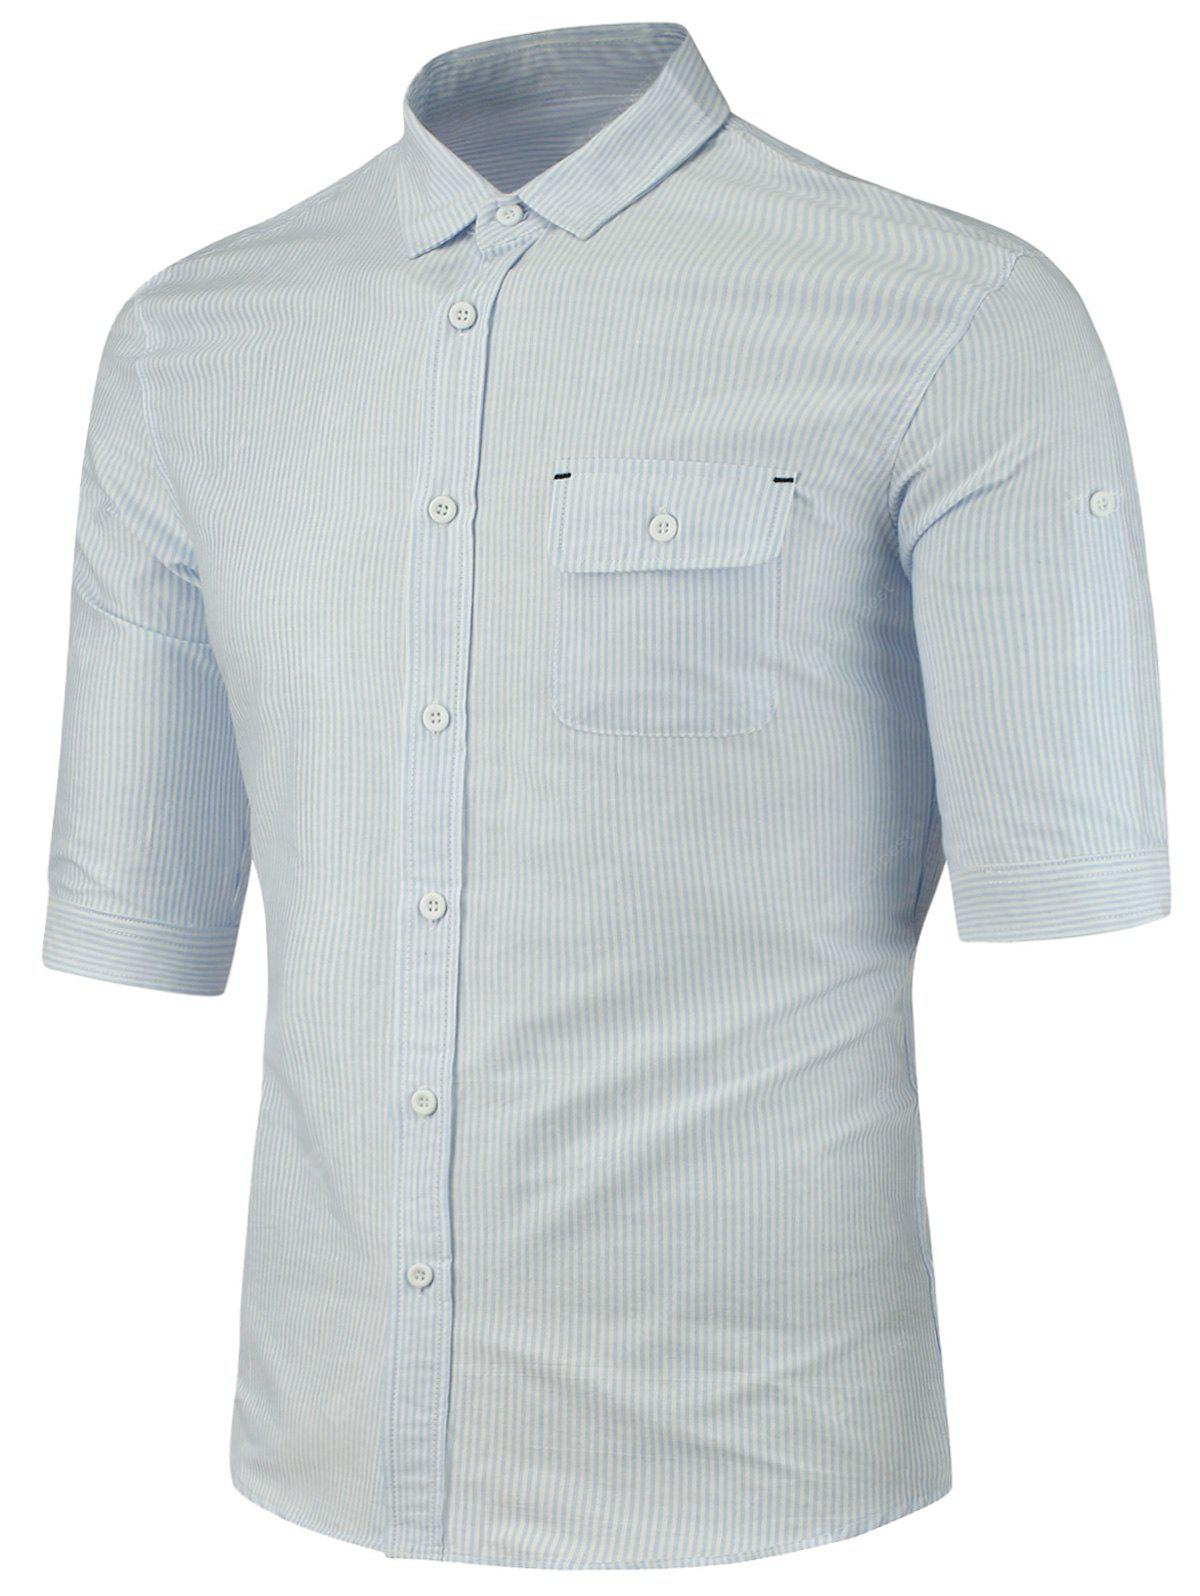 BLUE Turndown Collar Half Sleeve Pocket Vertical Stripe Shirt